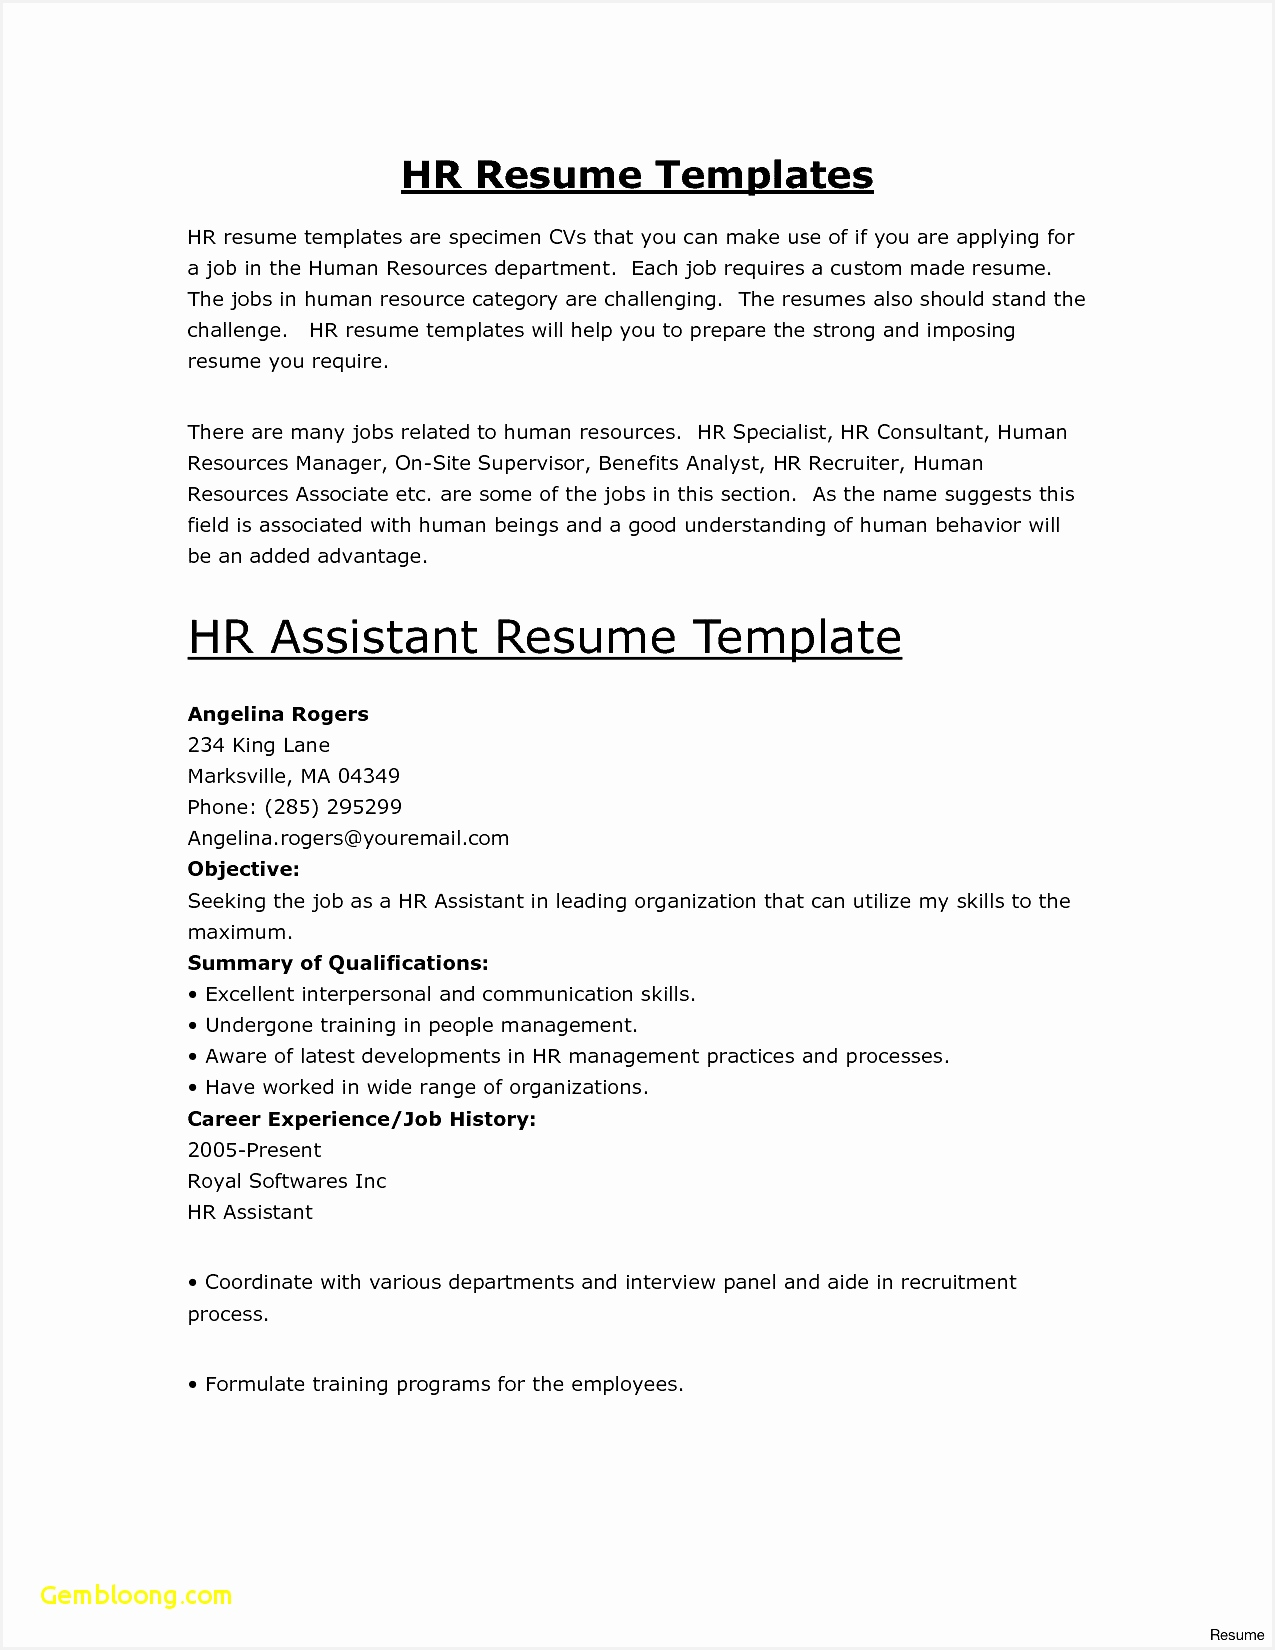 Simple Resume Layout Sample New Basic Resume Template Free Best Od Specialist Sample Resume16501275